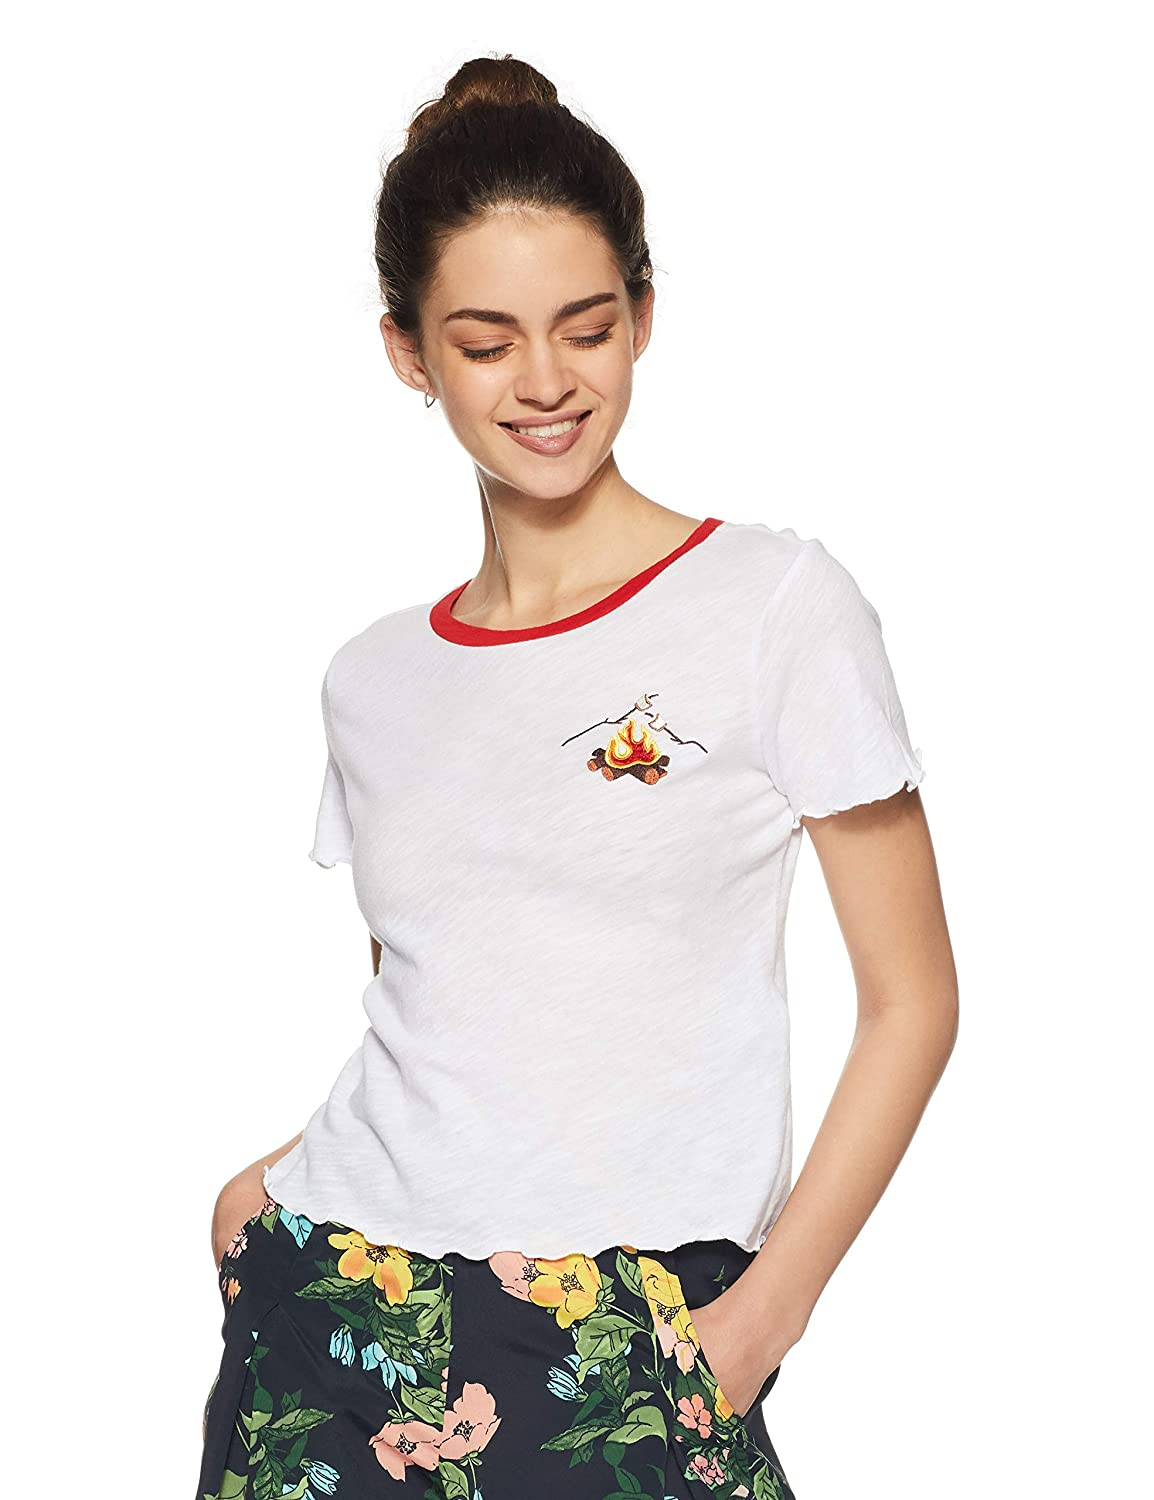 50fbcbe1 Forever 21 Women's Campfire Graphic Tee Logo 89088, Small, White/Orange:  Amazon.in: Clothing & Accessories